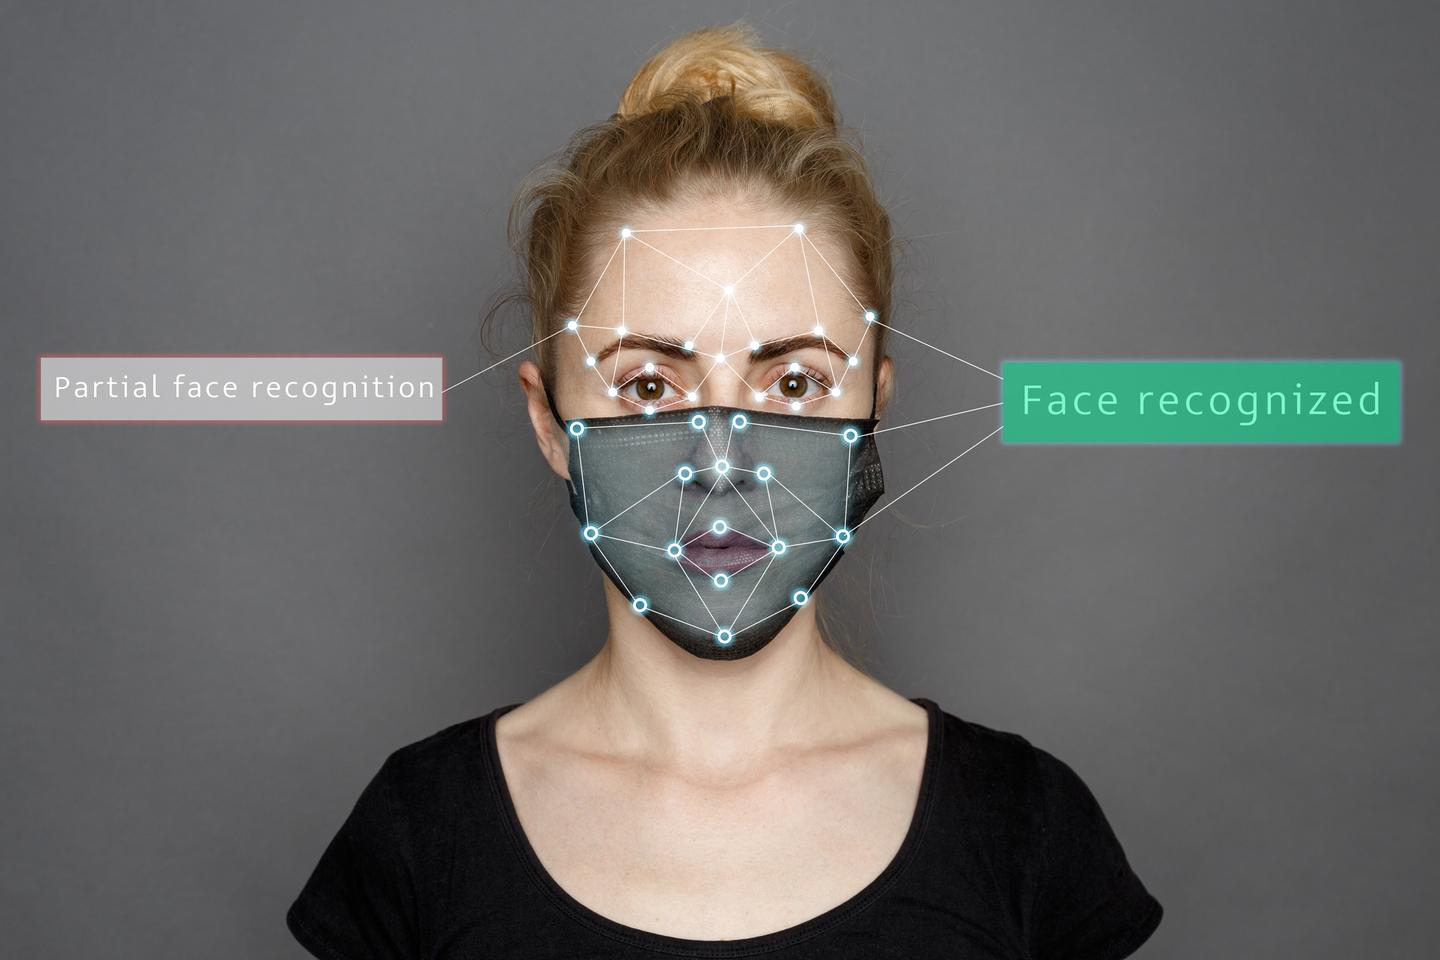 In a new study, the best algorithm tested still failed 5 percent of the time when trying to identify faces covered in masks